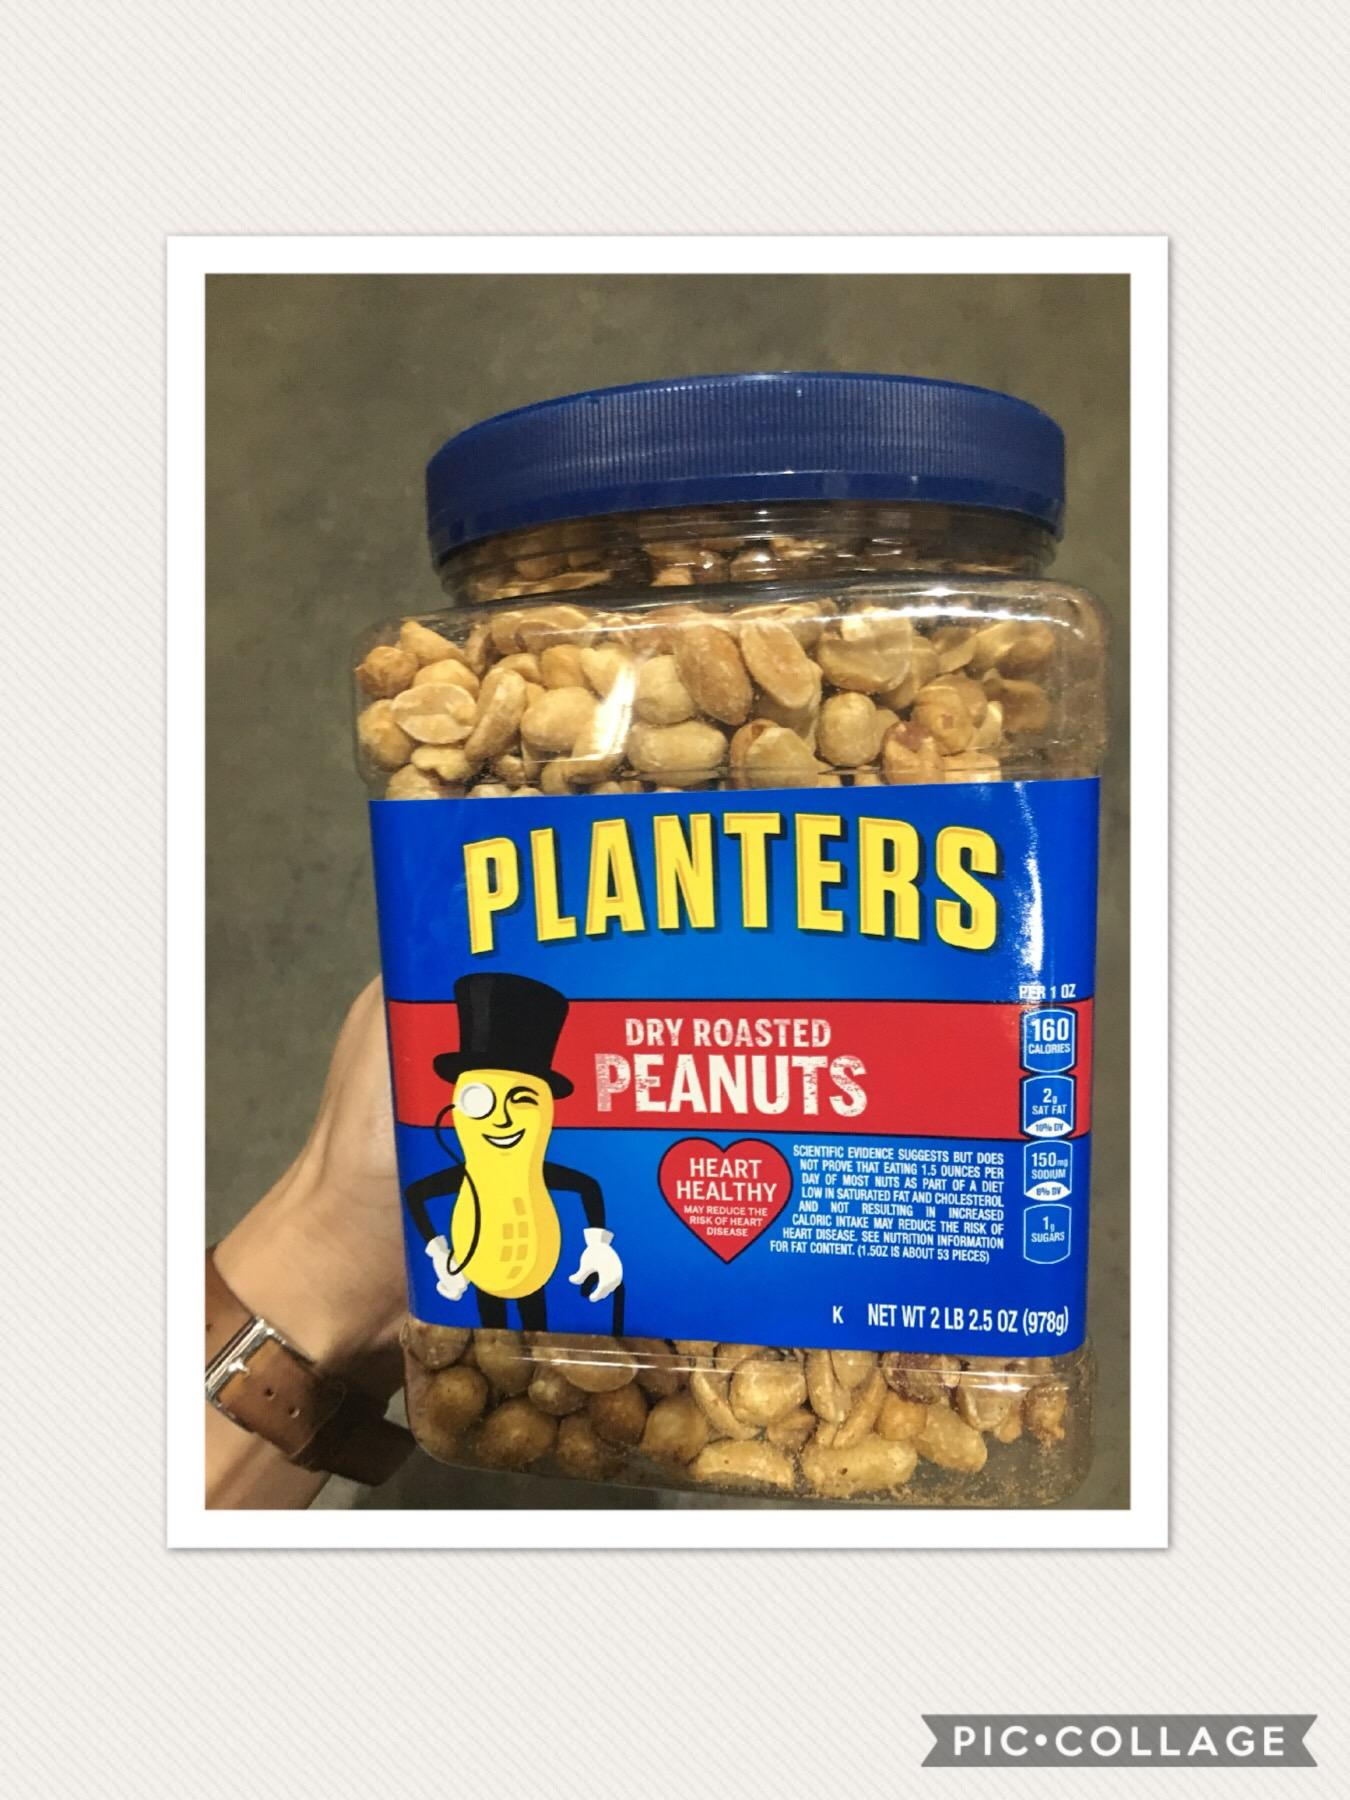 PLANTERS Philippines: PLANTERS price list - Nuts & Snacks for sale on planters mixed nuts tin, planters salted mixed nuts, planters mixed nuts ingredients, planters roasted mixed nuts,